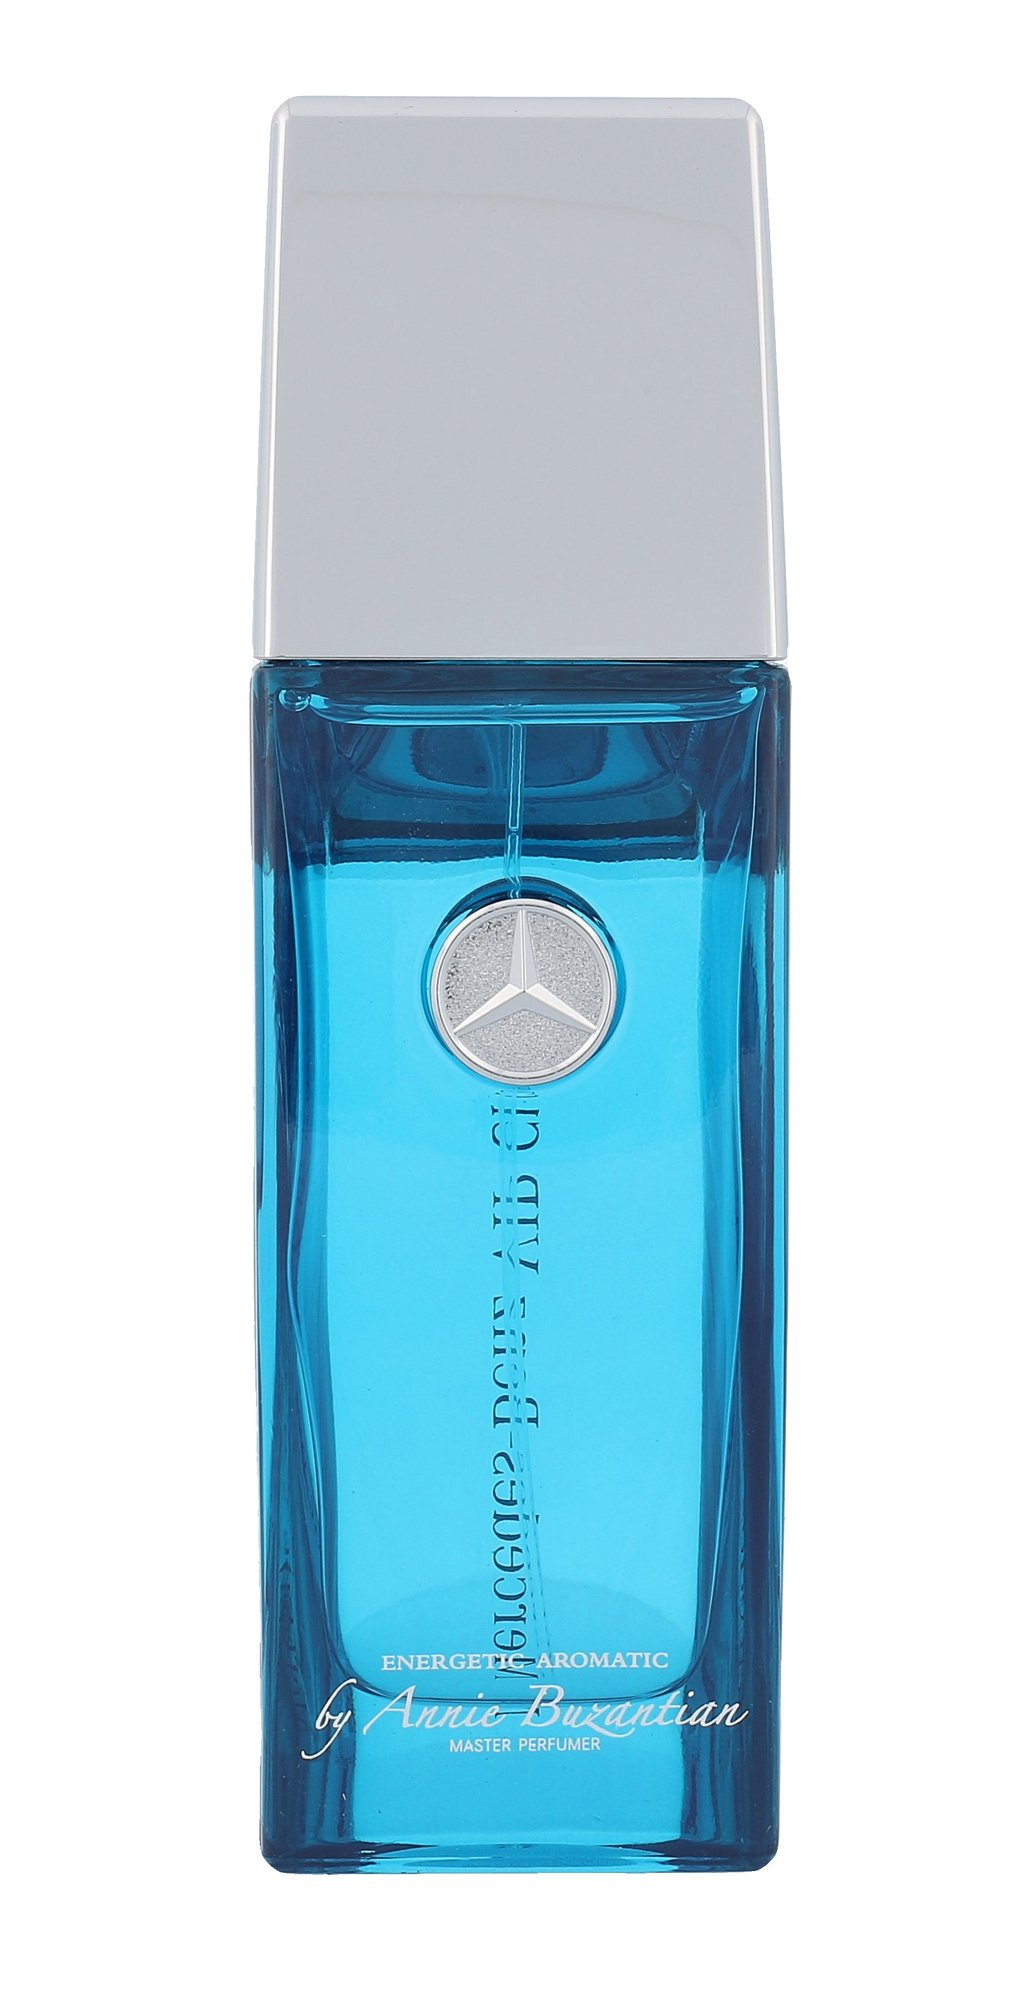 Mercedes-Benz Vip Club Energetic Aromatic by Annie Buzantian EDT 100ml